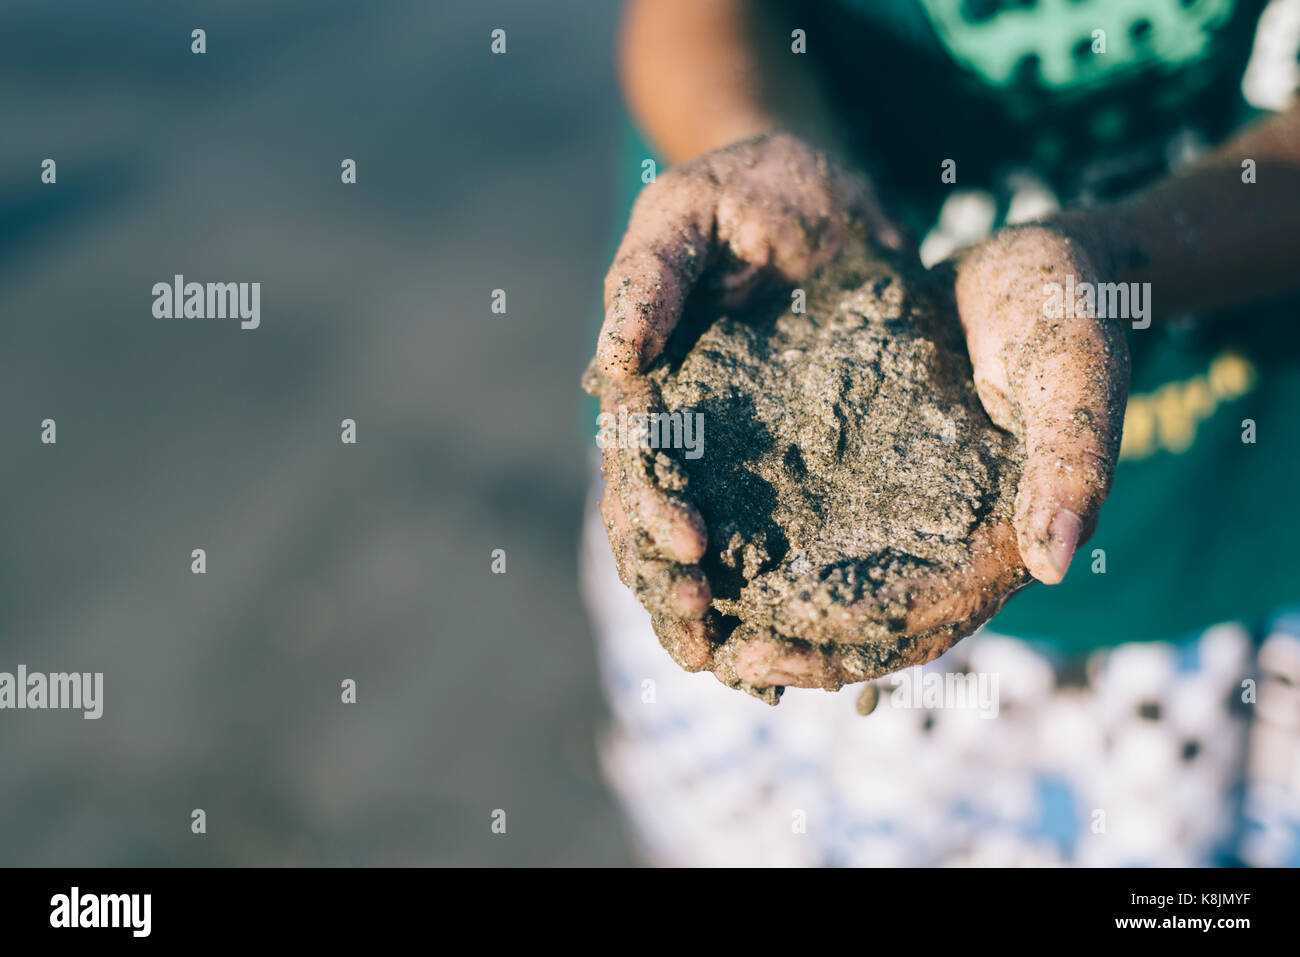 children playing with sand beaches.having fun with family.holiday concept. - Stock Image